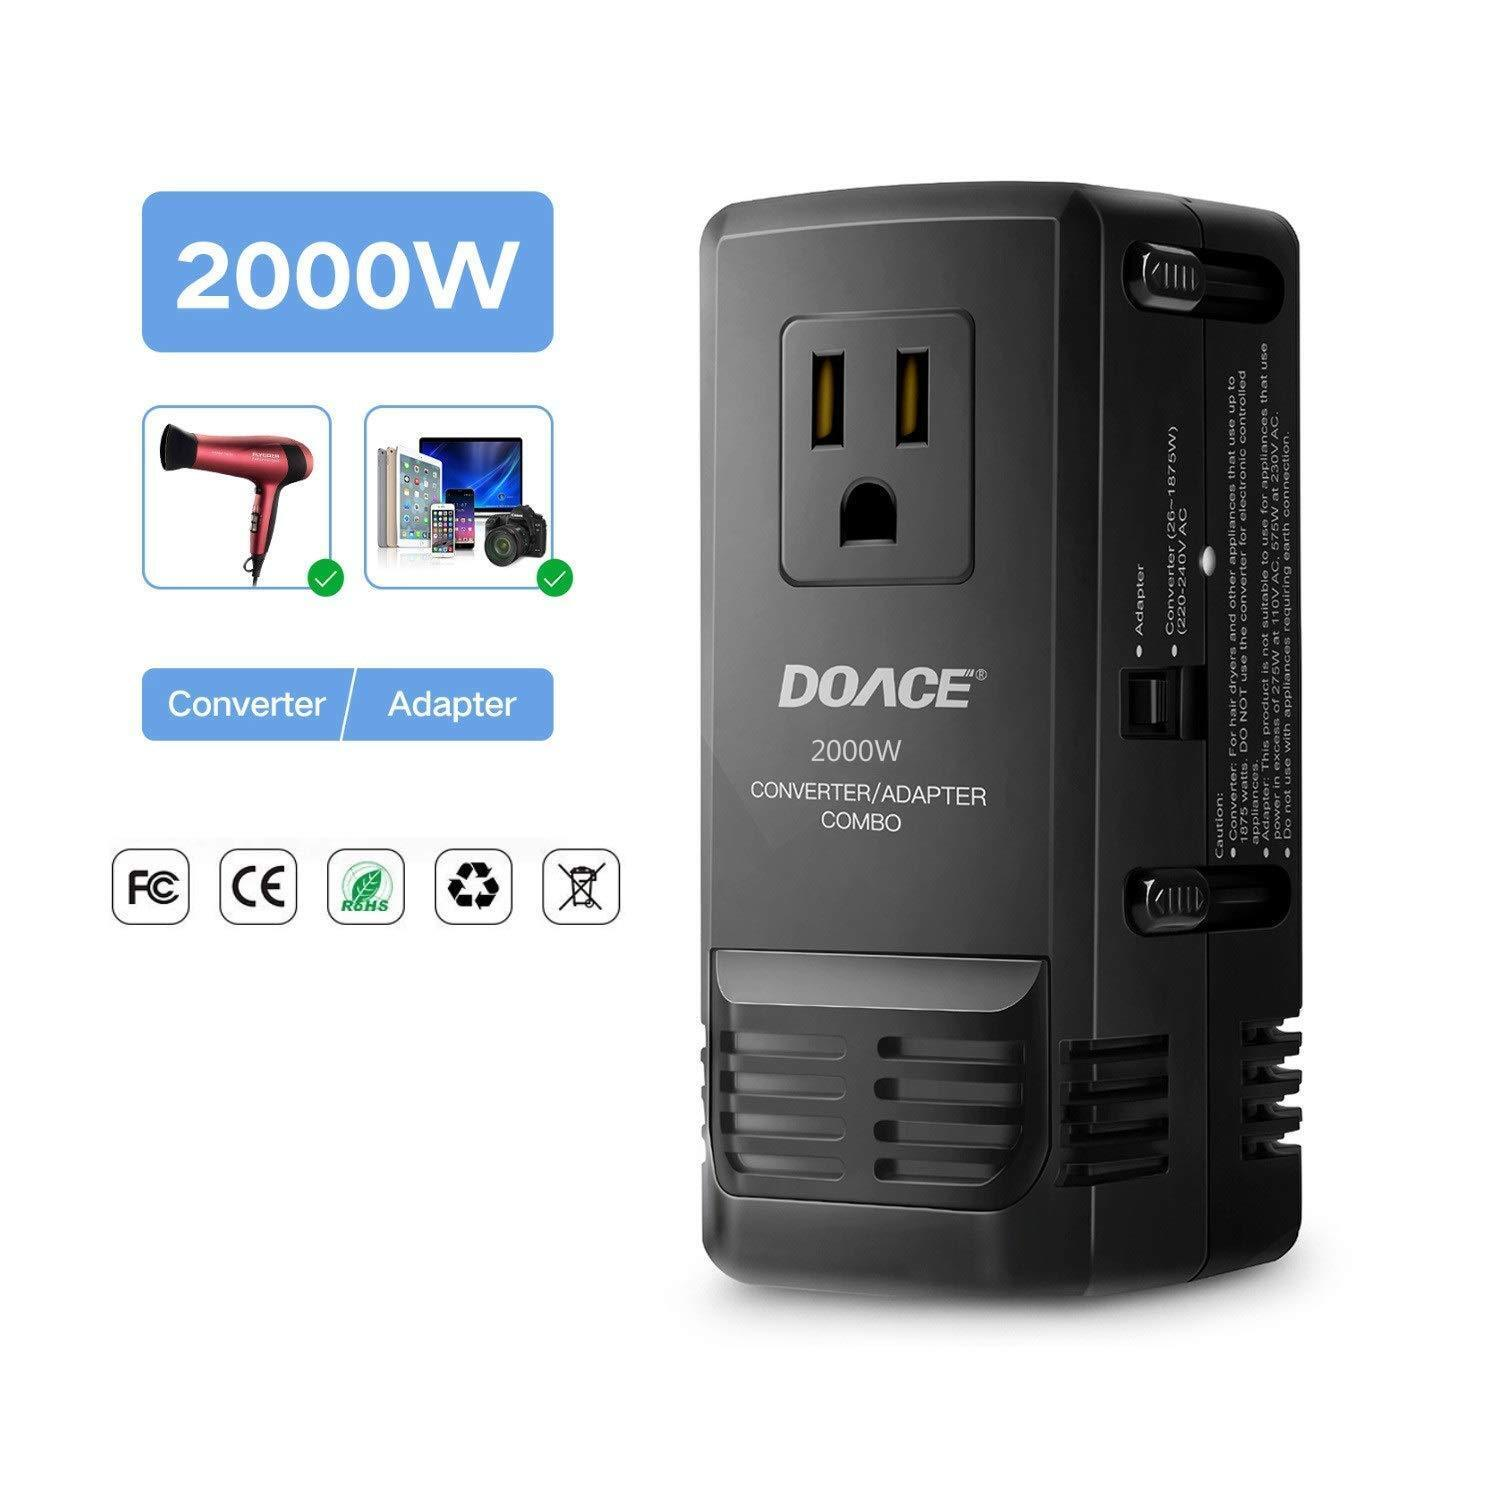 DOACE 2000W Travel Adapter and Voltage Converter Combo, Step